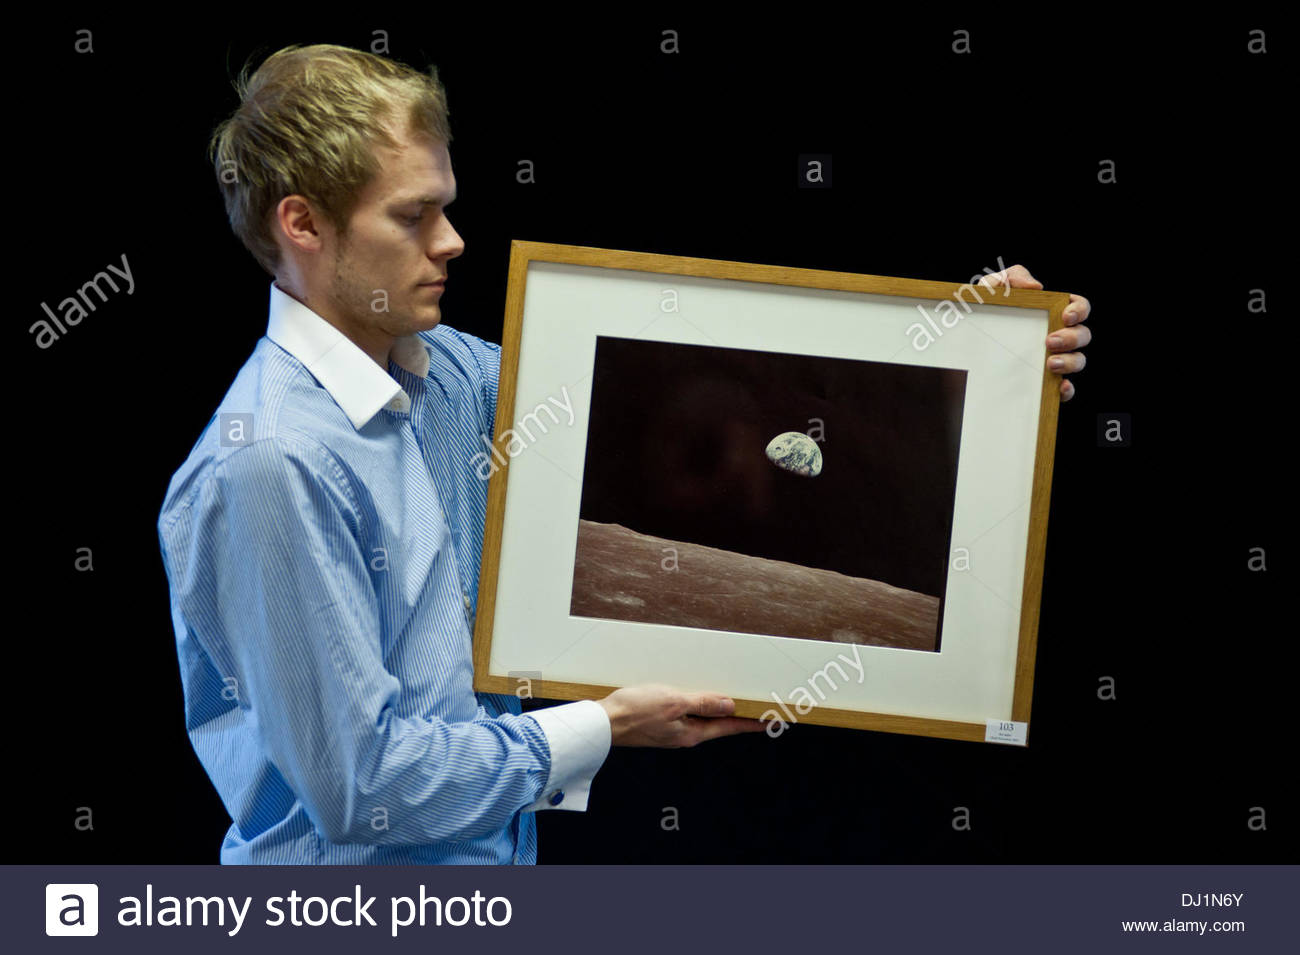 Alamy Exclusive: London, UK - 19 November 2013: Photography assistant Charles Hoey, looks at 'Earthrise, Apollo 8, 24 December 1968' by NASA/William Anders at the Dreweatts & Bloomsbury photography auction preview. The photograph estimated £600-800, will go to auction on the 22nd November. Credit:  Piero Cruciatti/Alamy Live News - Stock Image